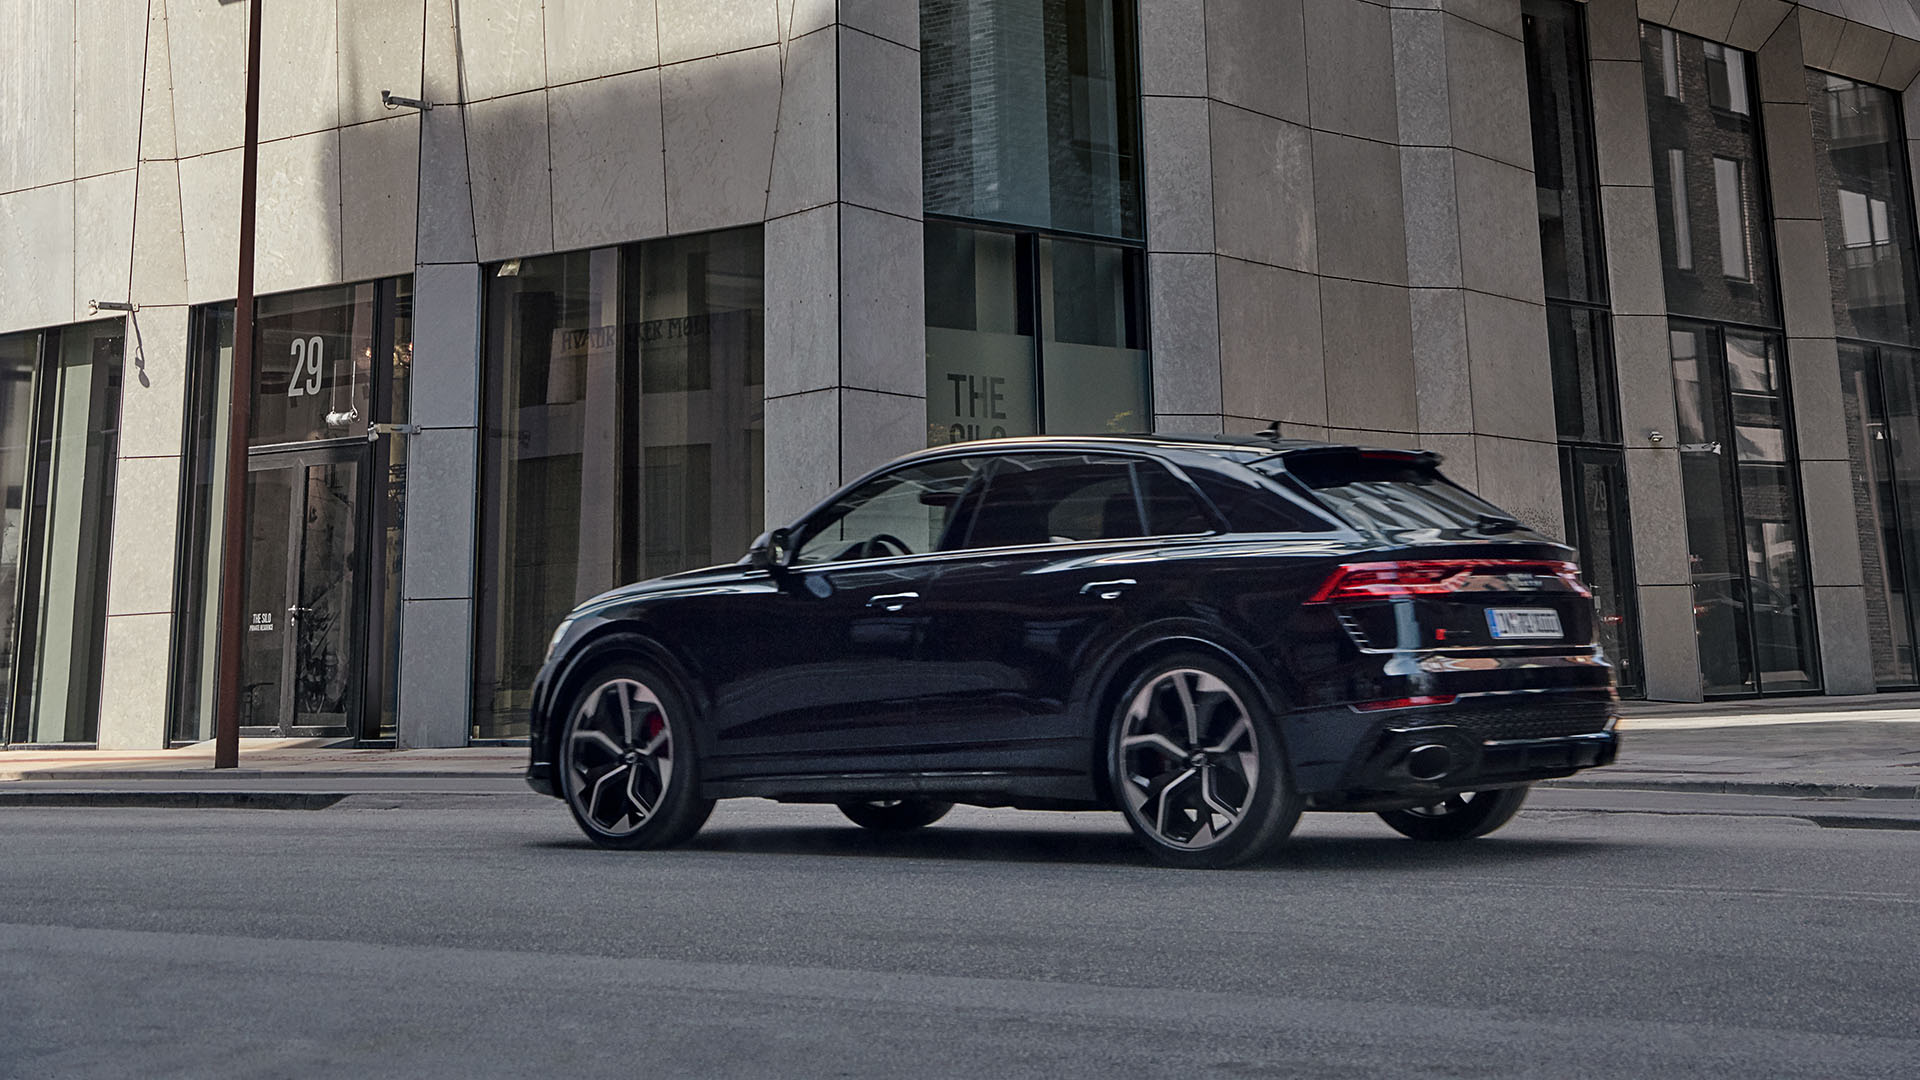 Audi RS Q8 rear view